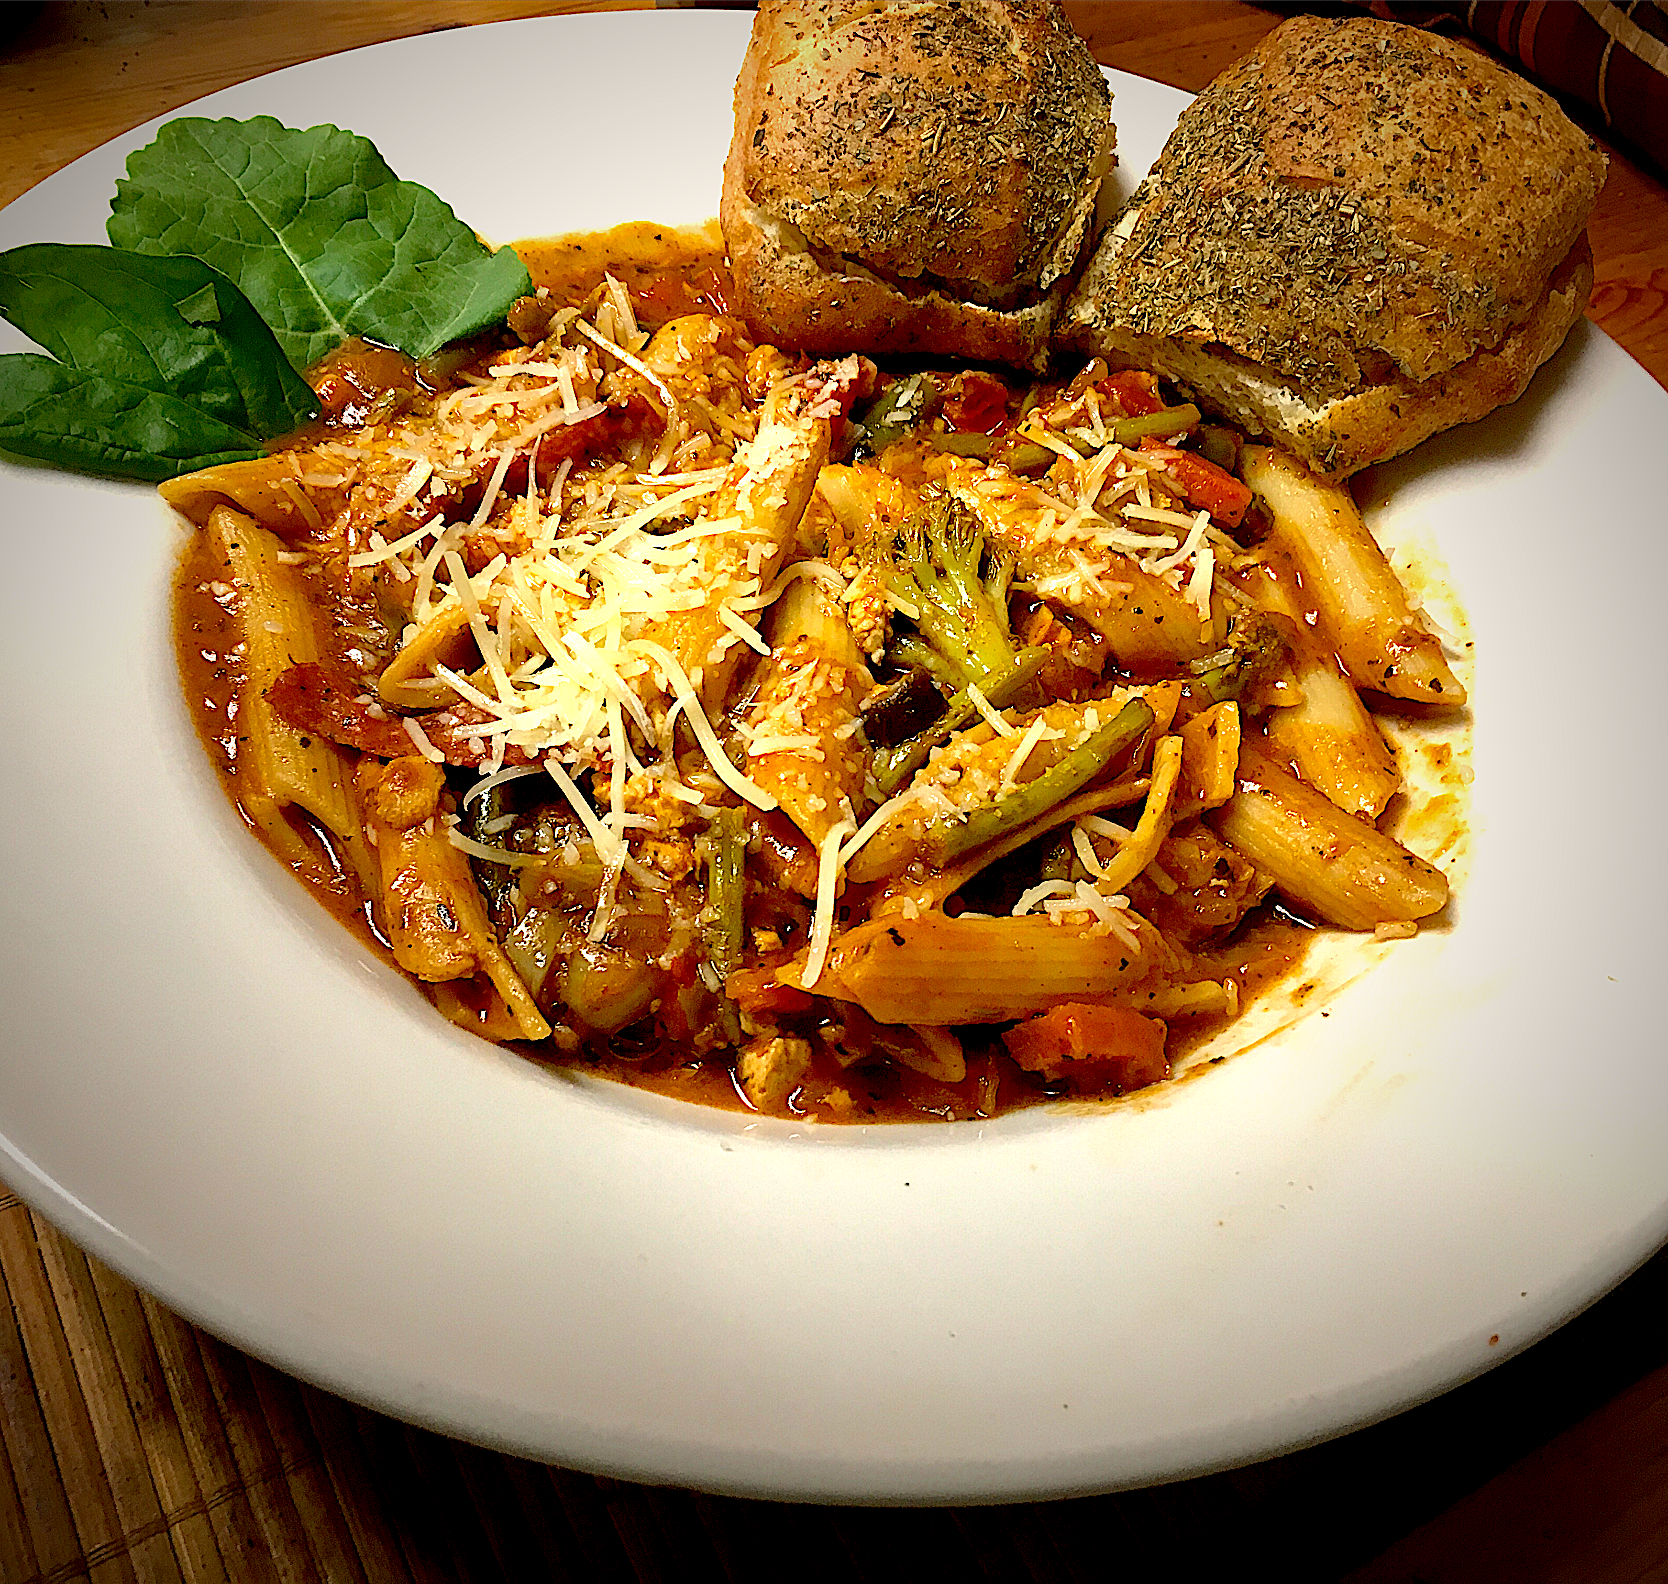 Rigatoni Pasta With Vegetable and Tomato, Served With Rosemary Roll with Onion & Chive Cream Cheese